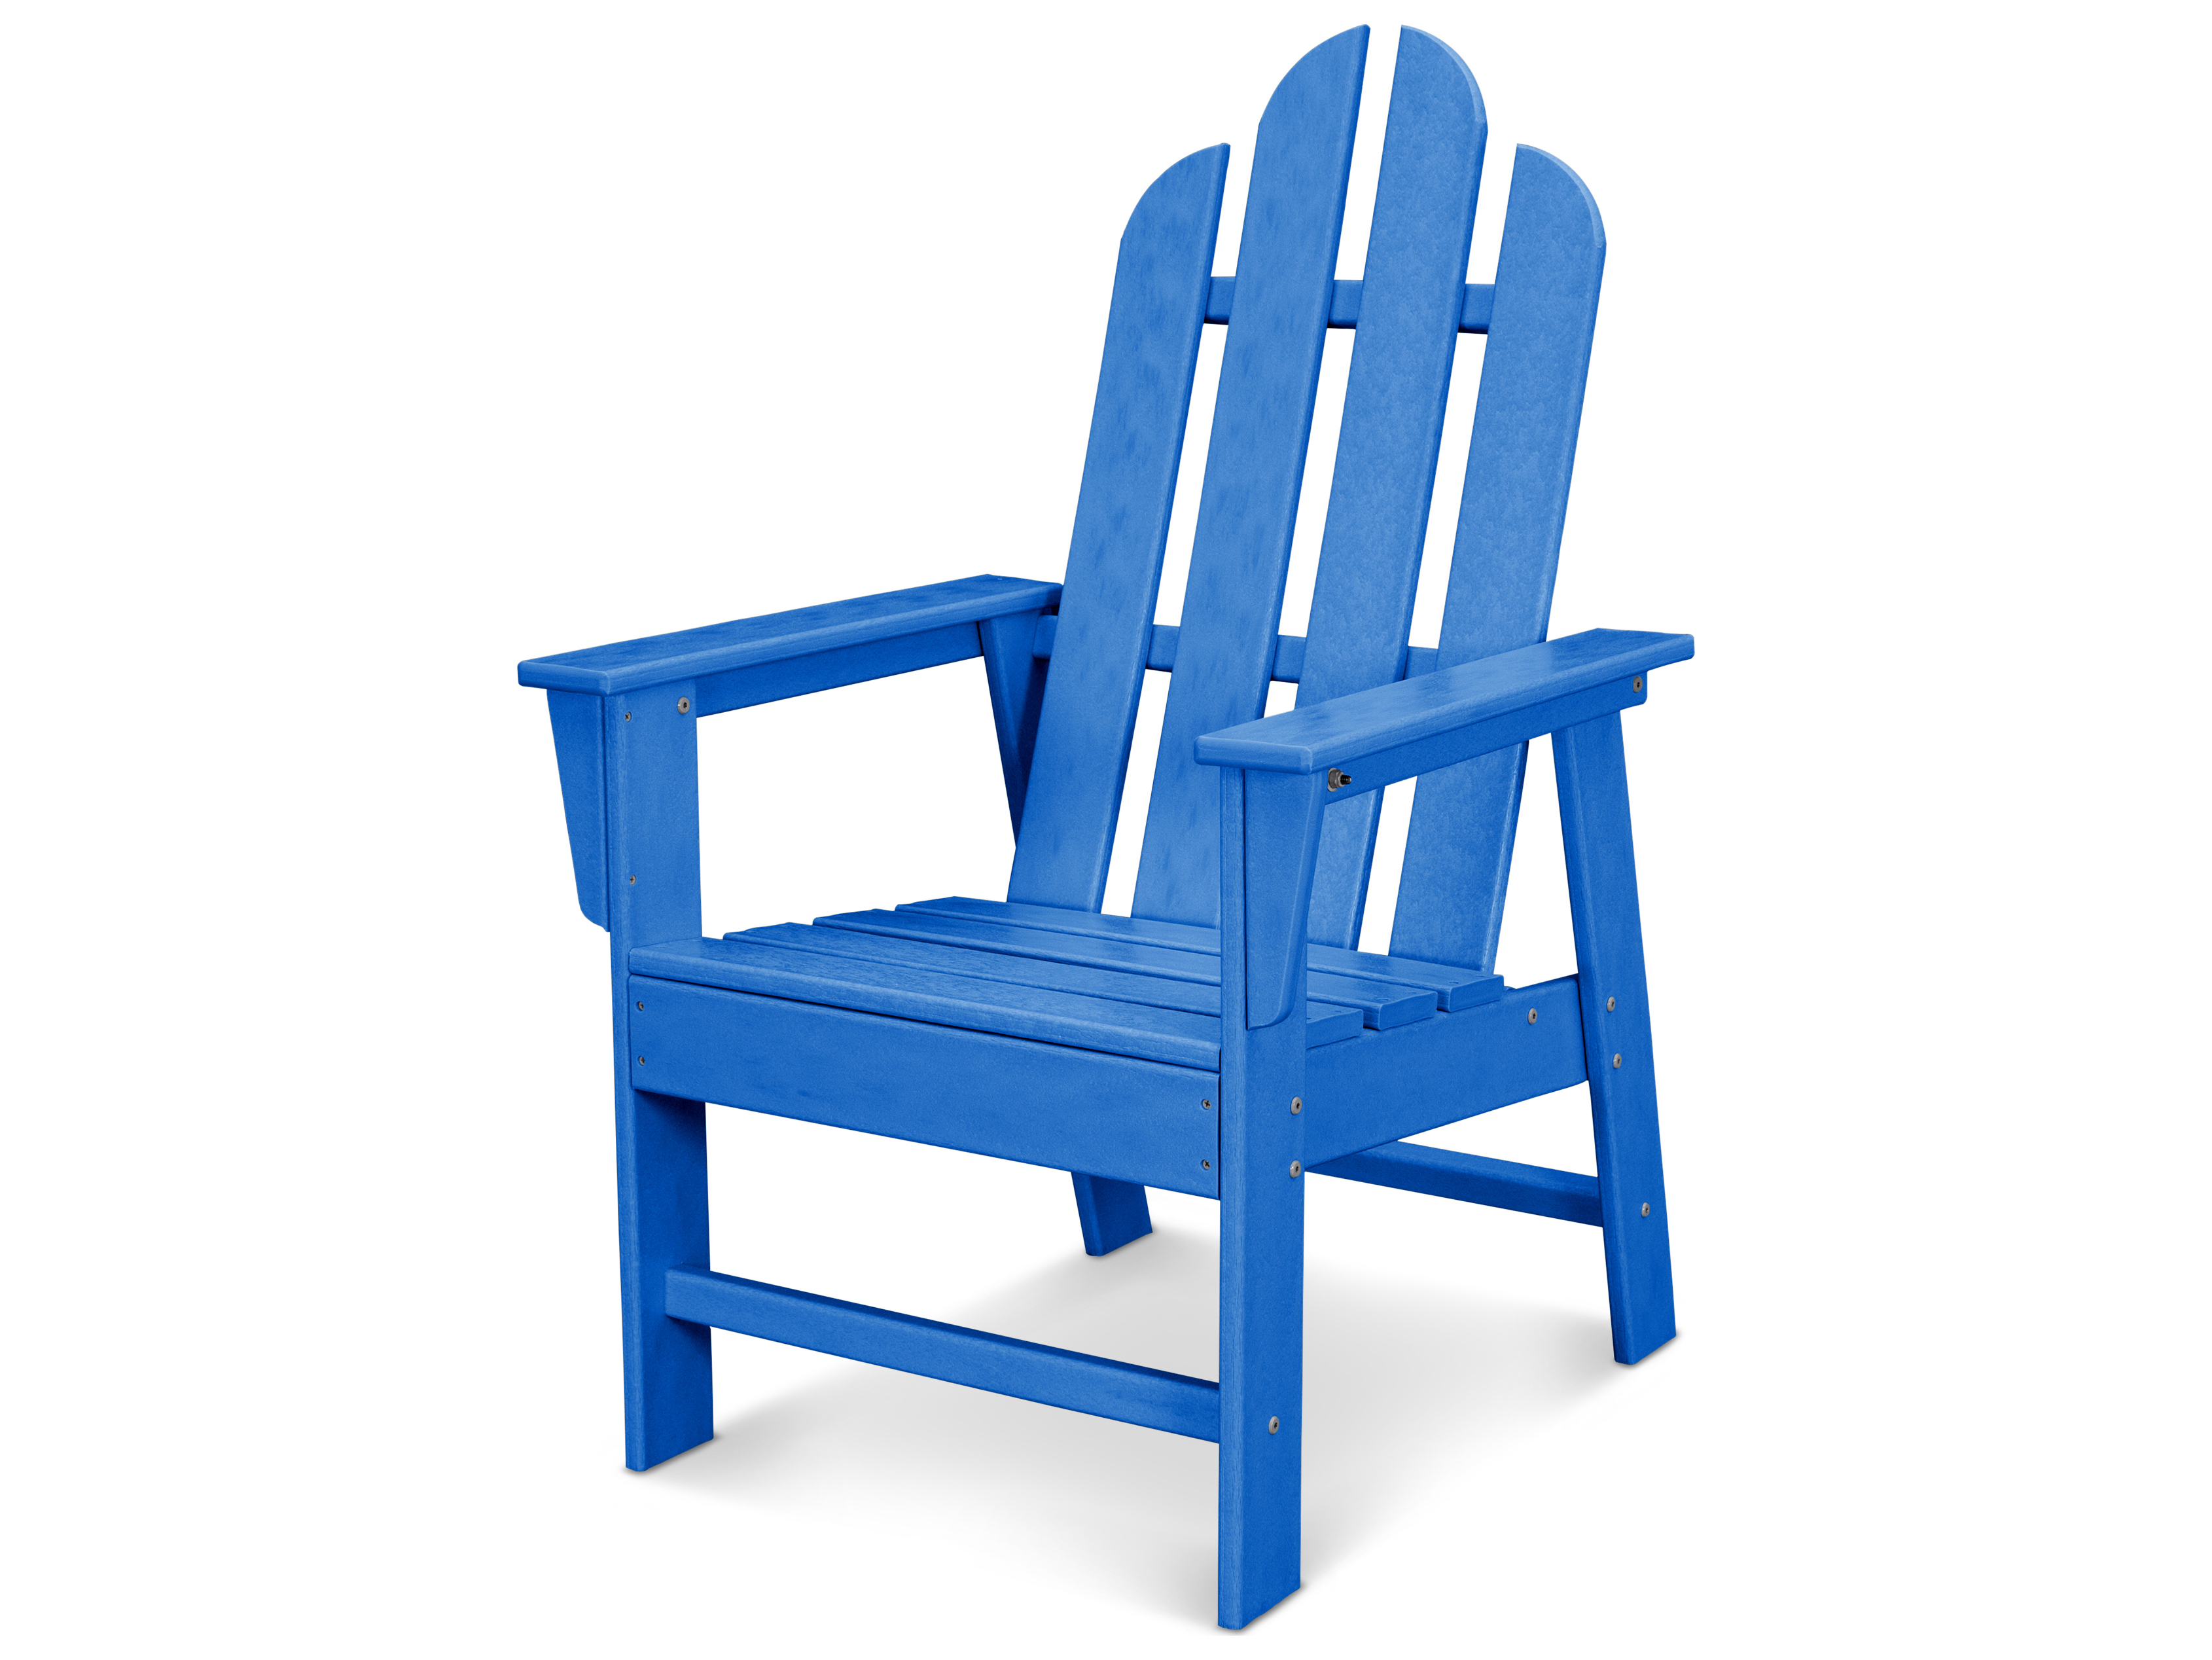 Polywood long island recycled plastic adirondack dining arm chair pwecd16 - Chaise adirondack plastique recycle costco ...